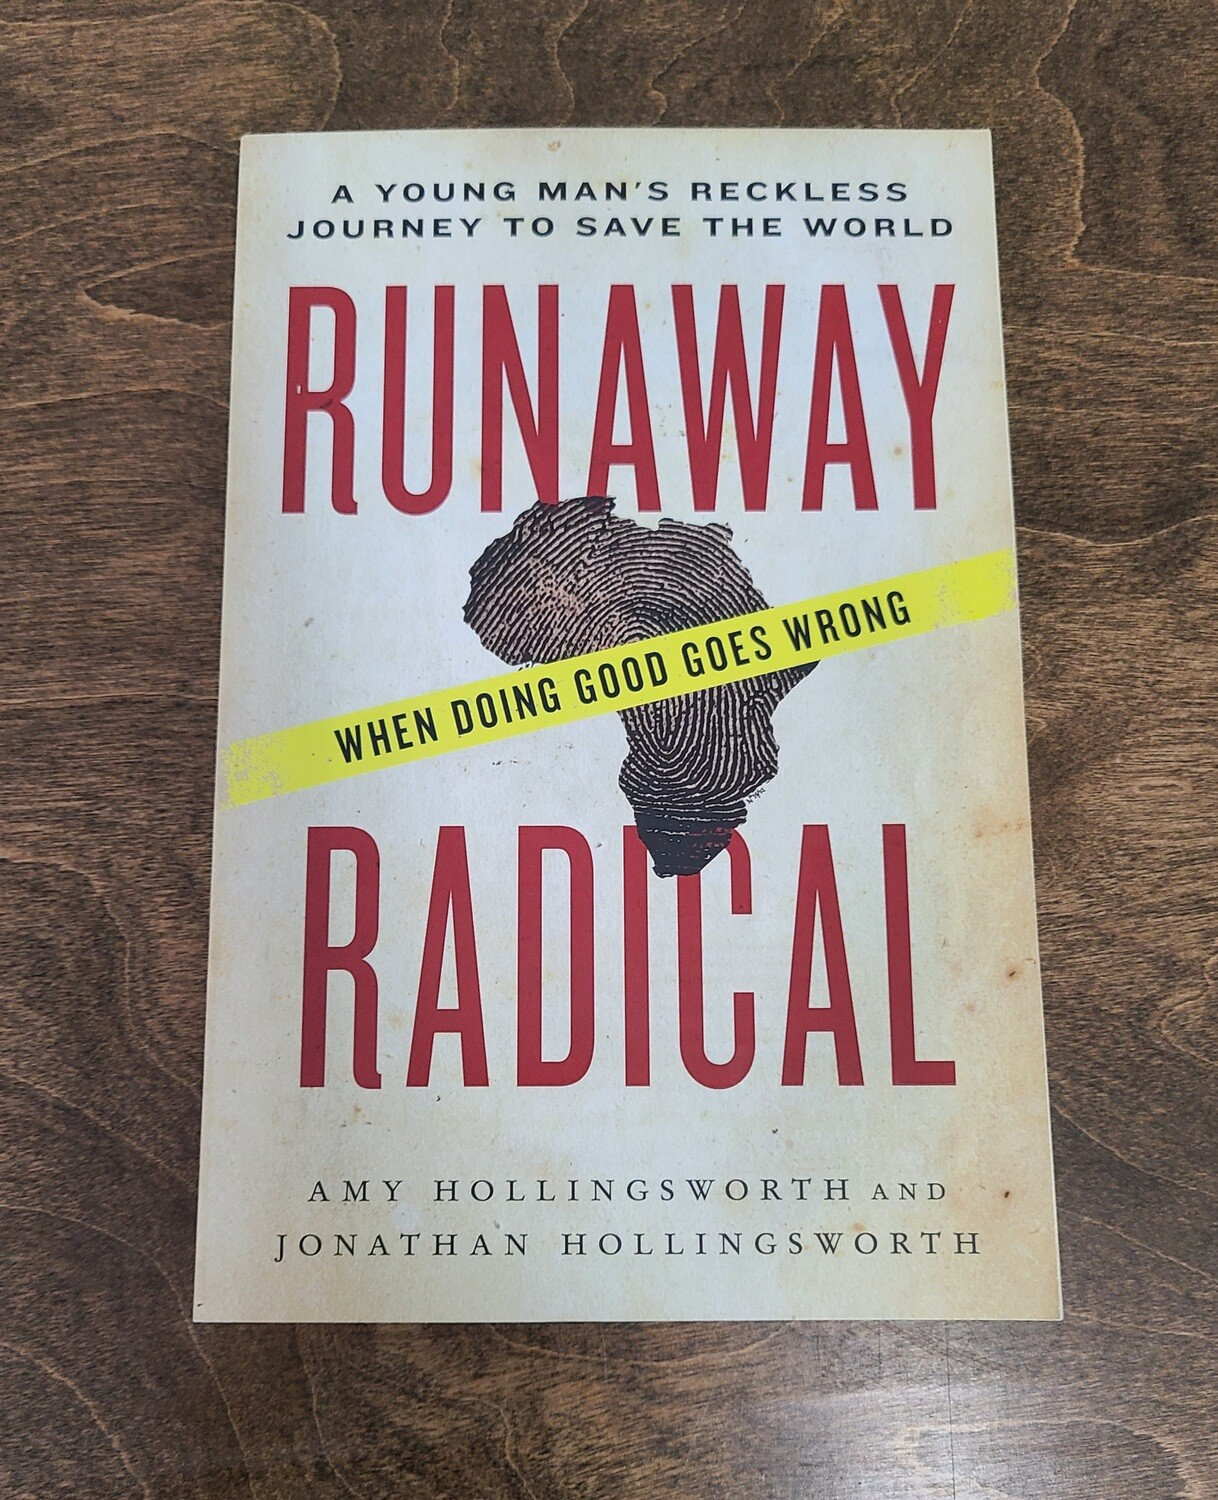 Runaway Radical: A Young Man's Reckless Journey to Save the World by Amy Hollingsworth and Jonathan Hollingsworth